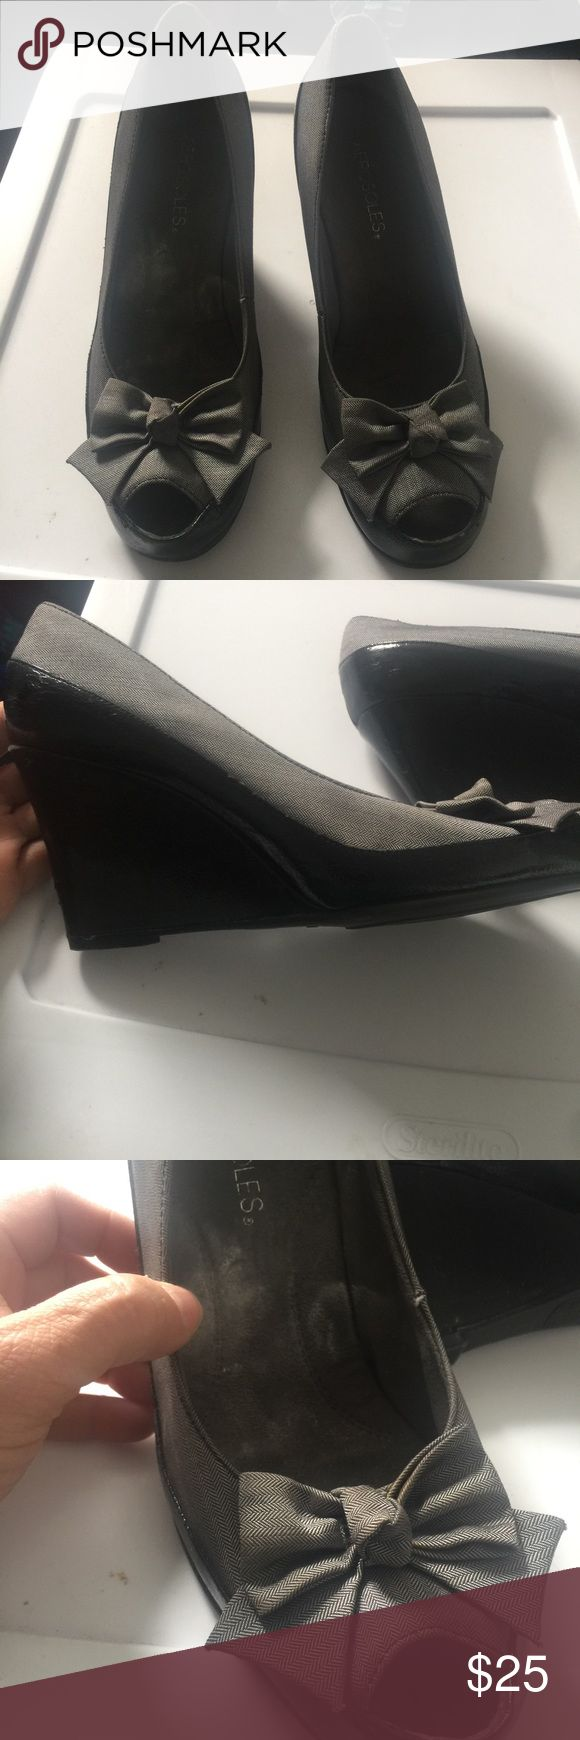 Aerosols black & grayish silver metallic wedge Black with silver grey metric fabric detail very comfortable and elegant.wedge open toe shoes. Size 8.5.                              #2S AEROSOLES Shoes Wedges